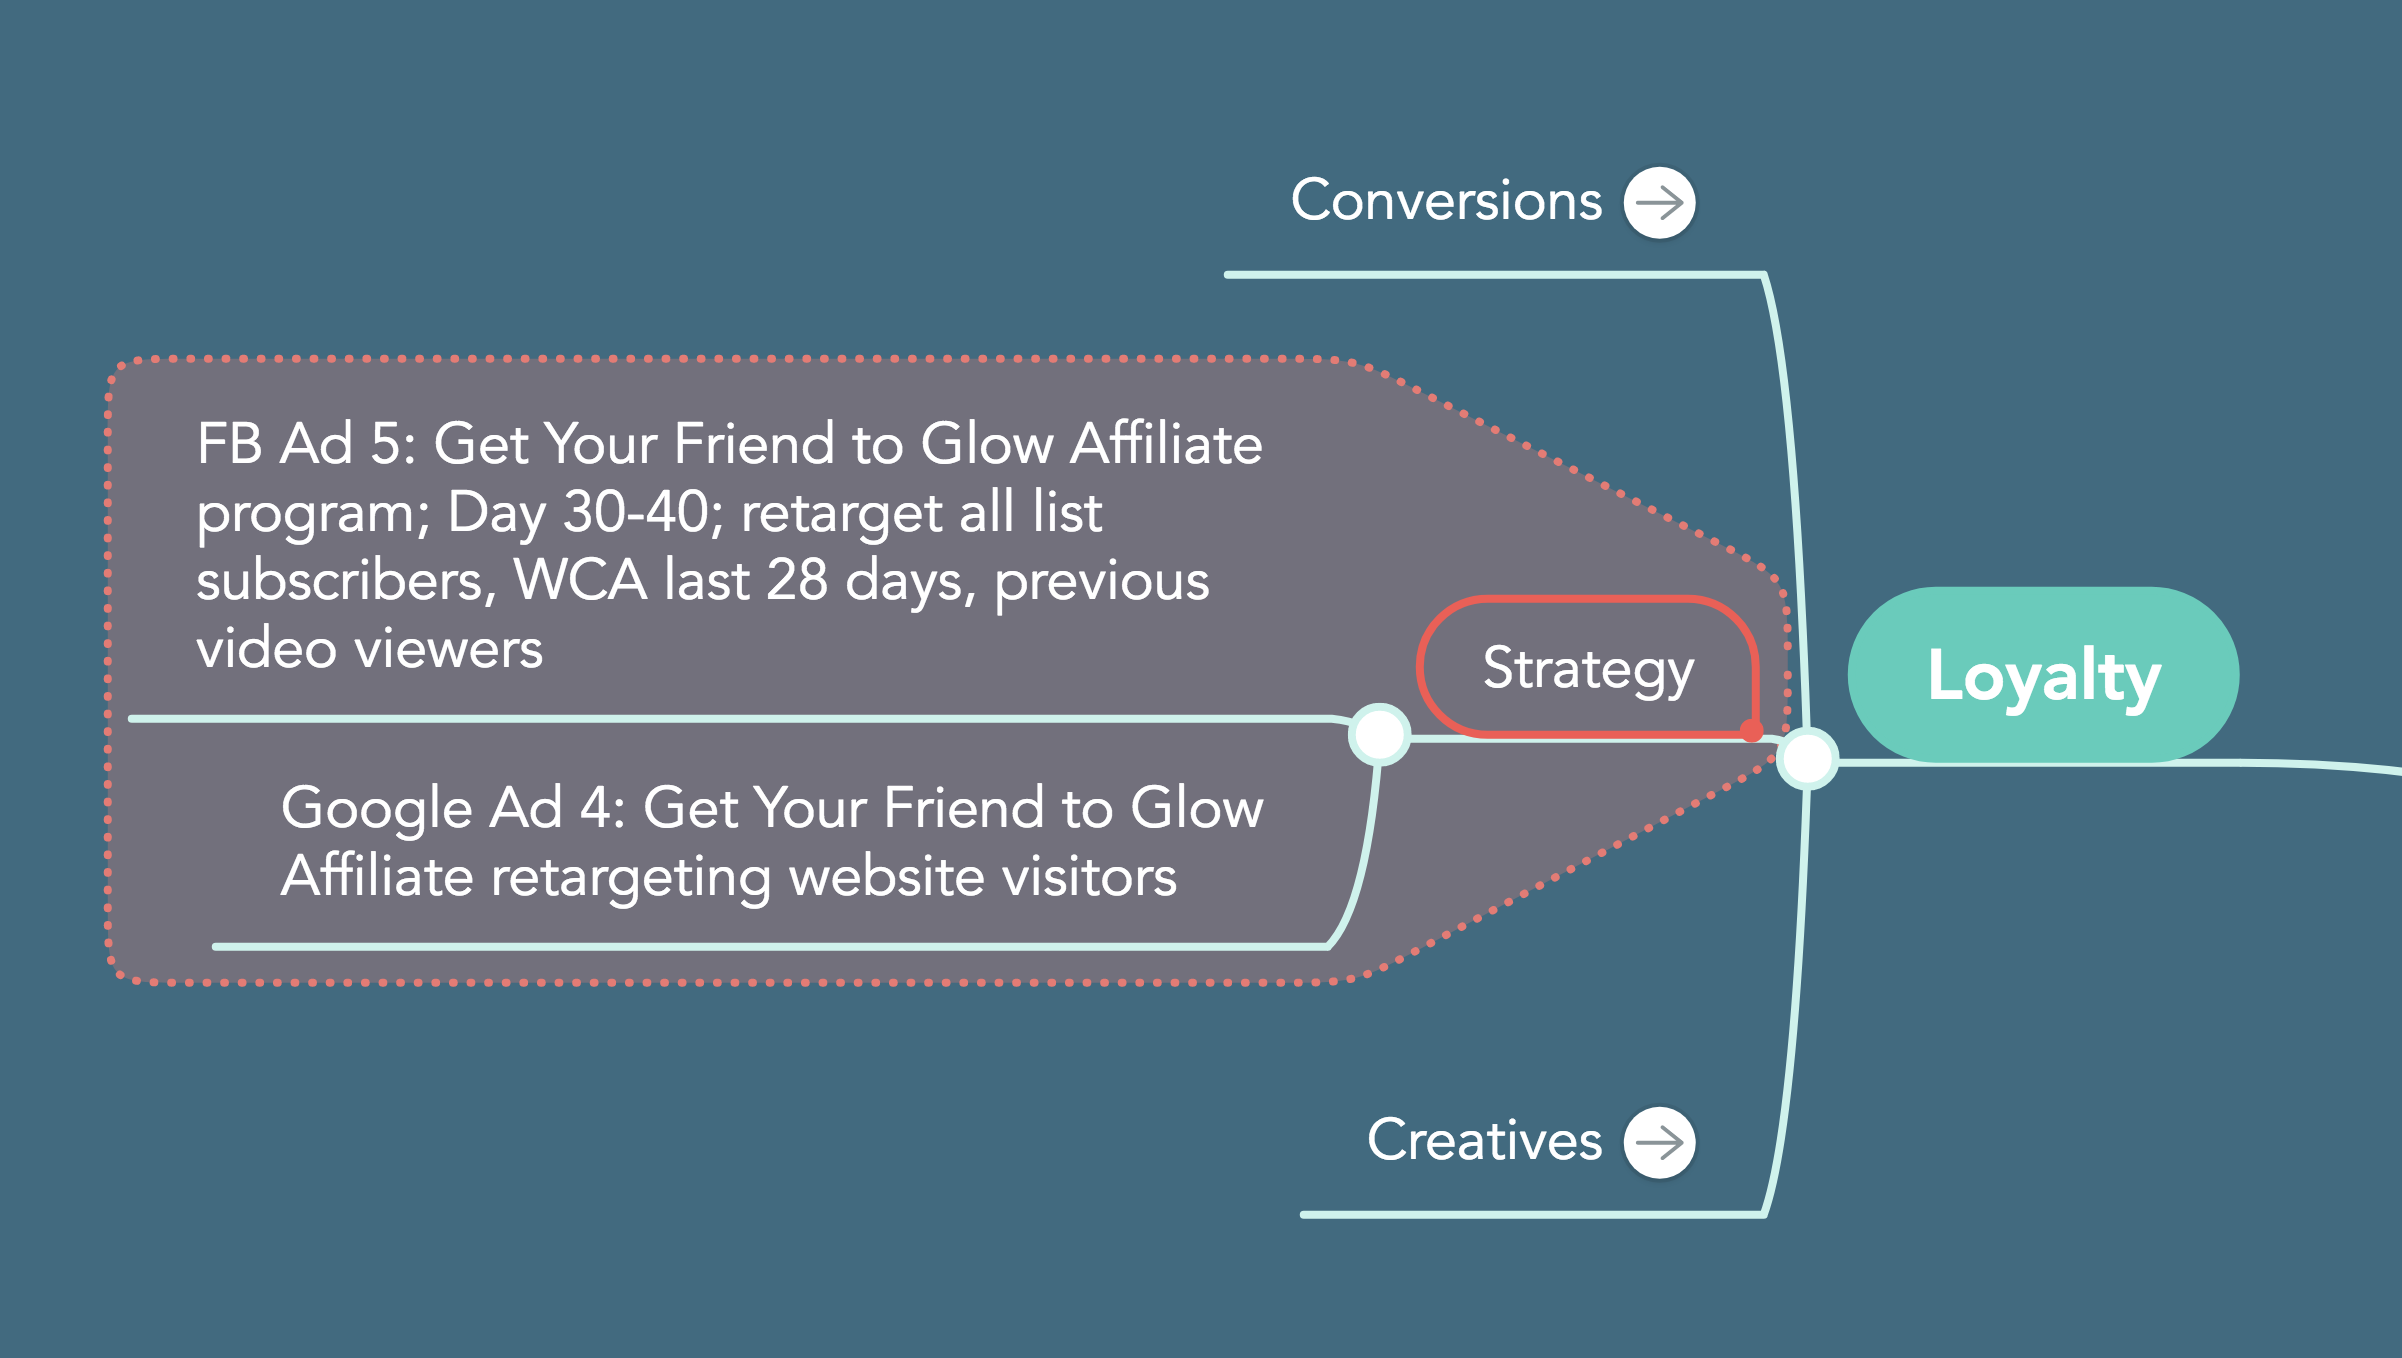 strategy loyalty customer life cycle MindMeister sales funnel facebook advertising google advertising